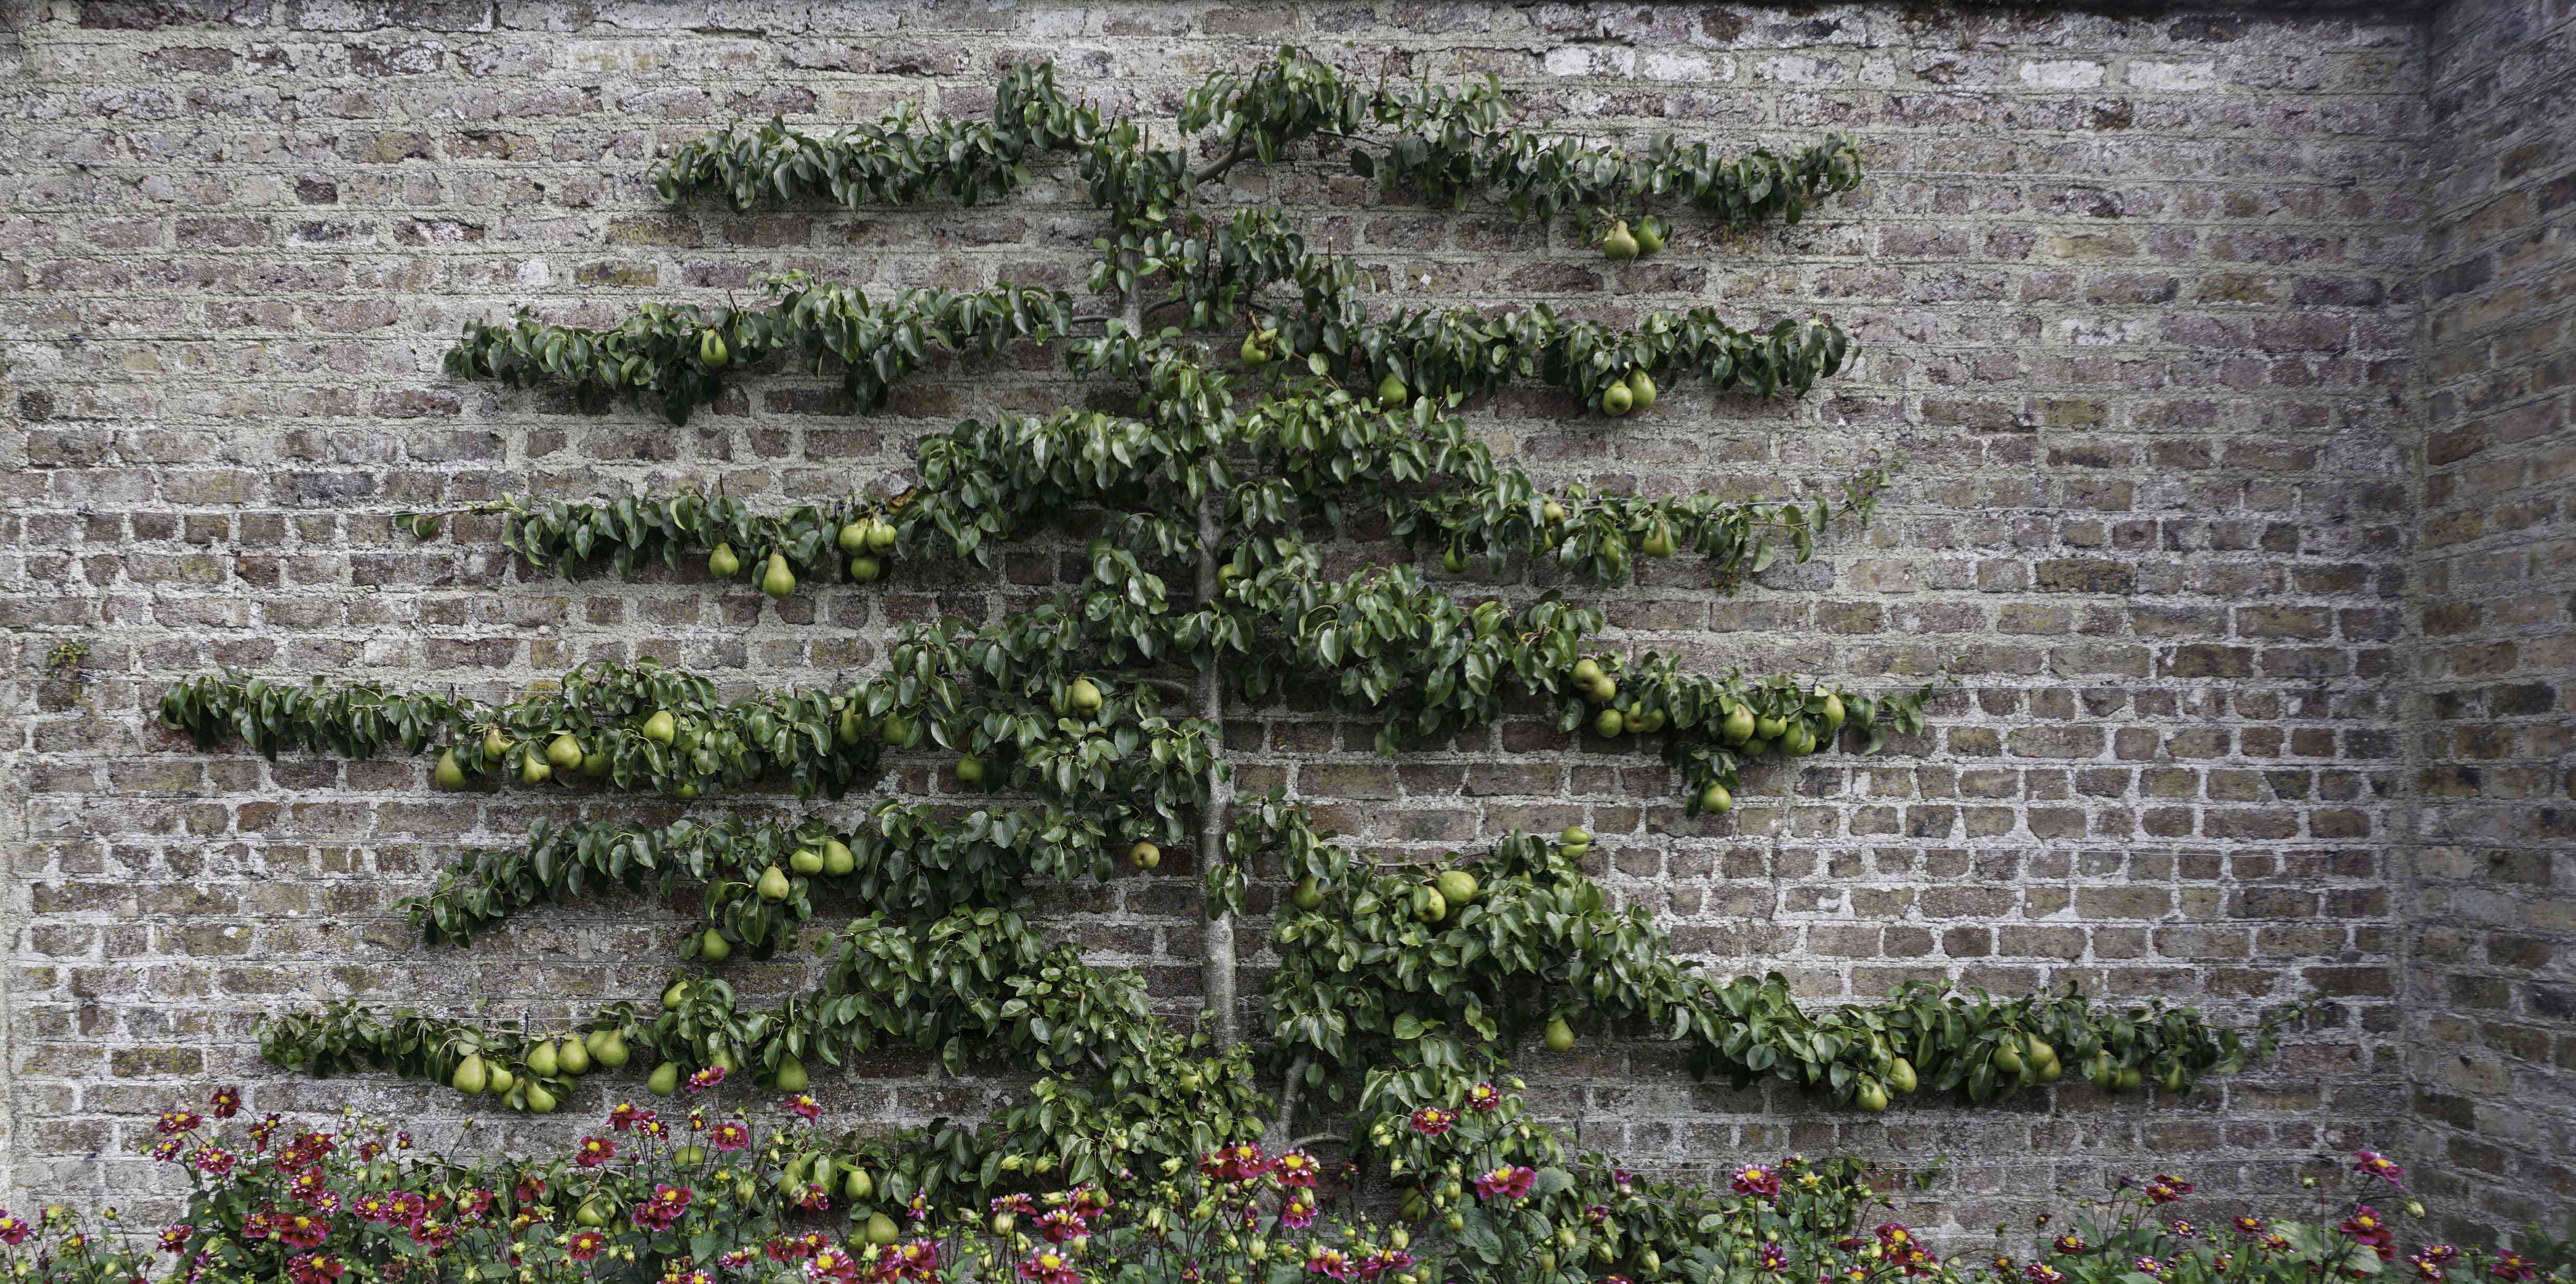 A pear fruit tree trained in the espalier way grown against a brick wall.